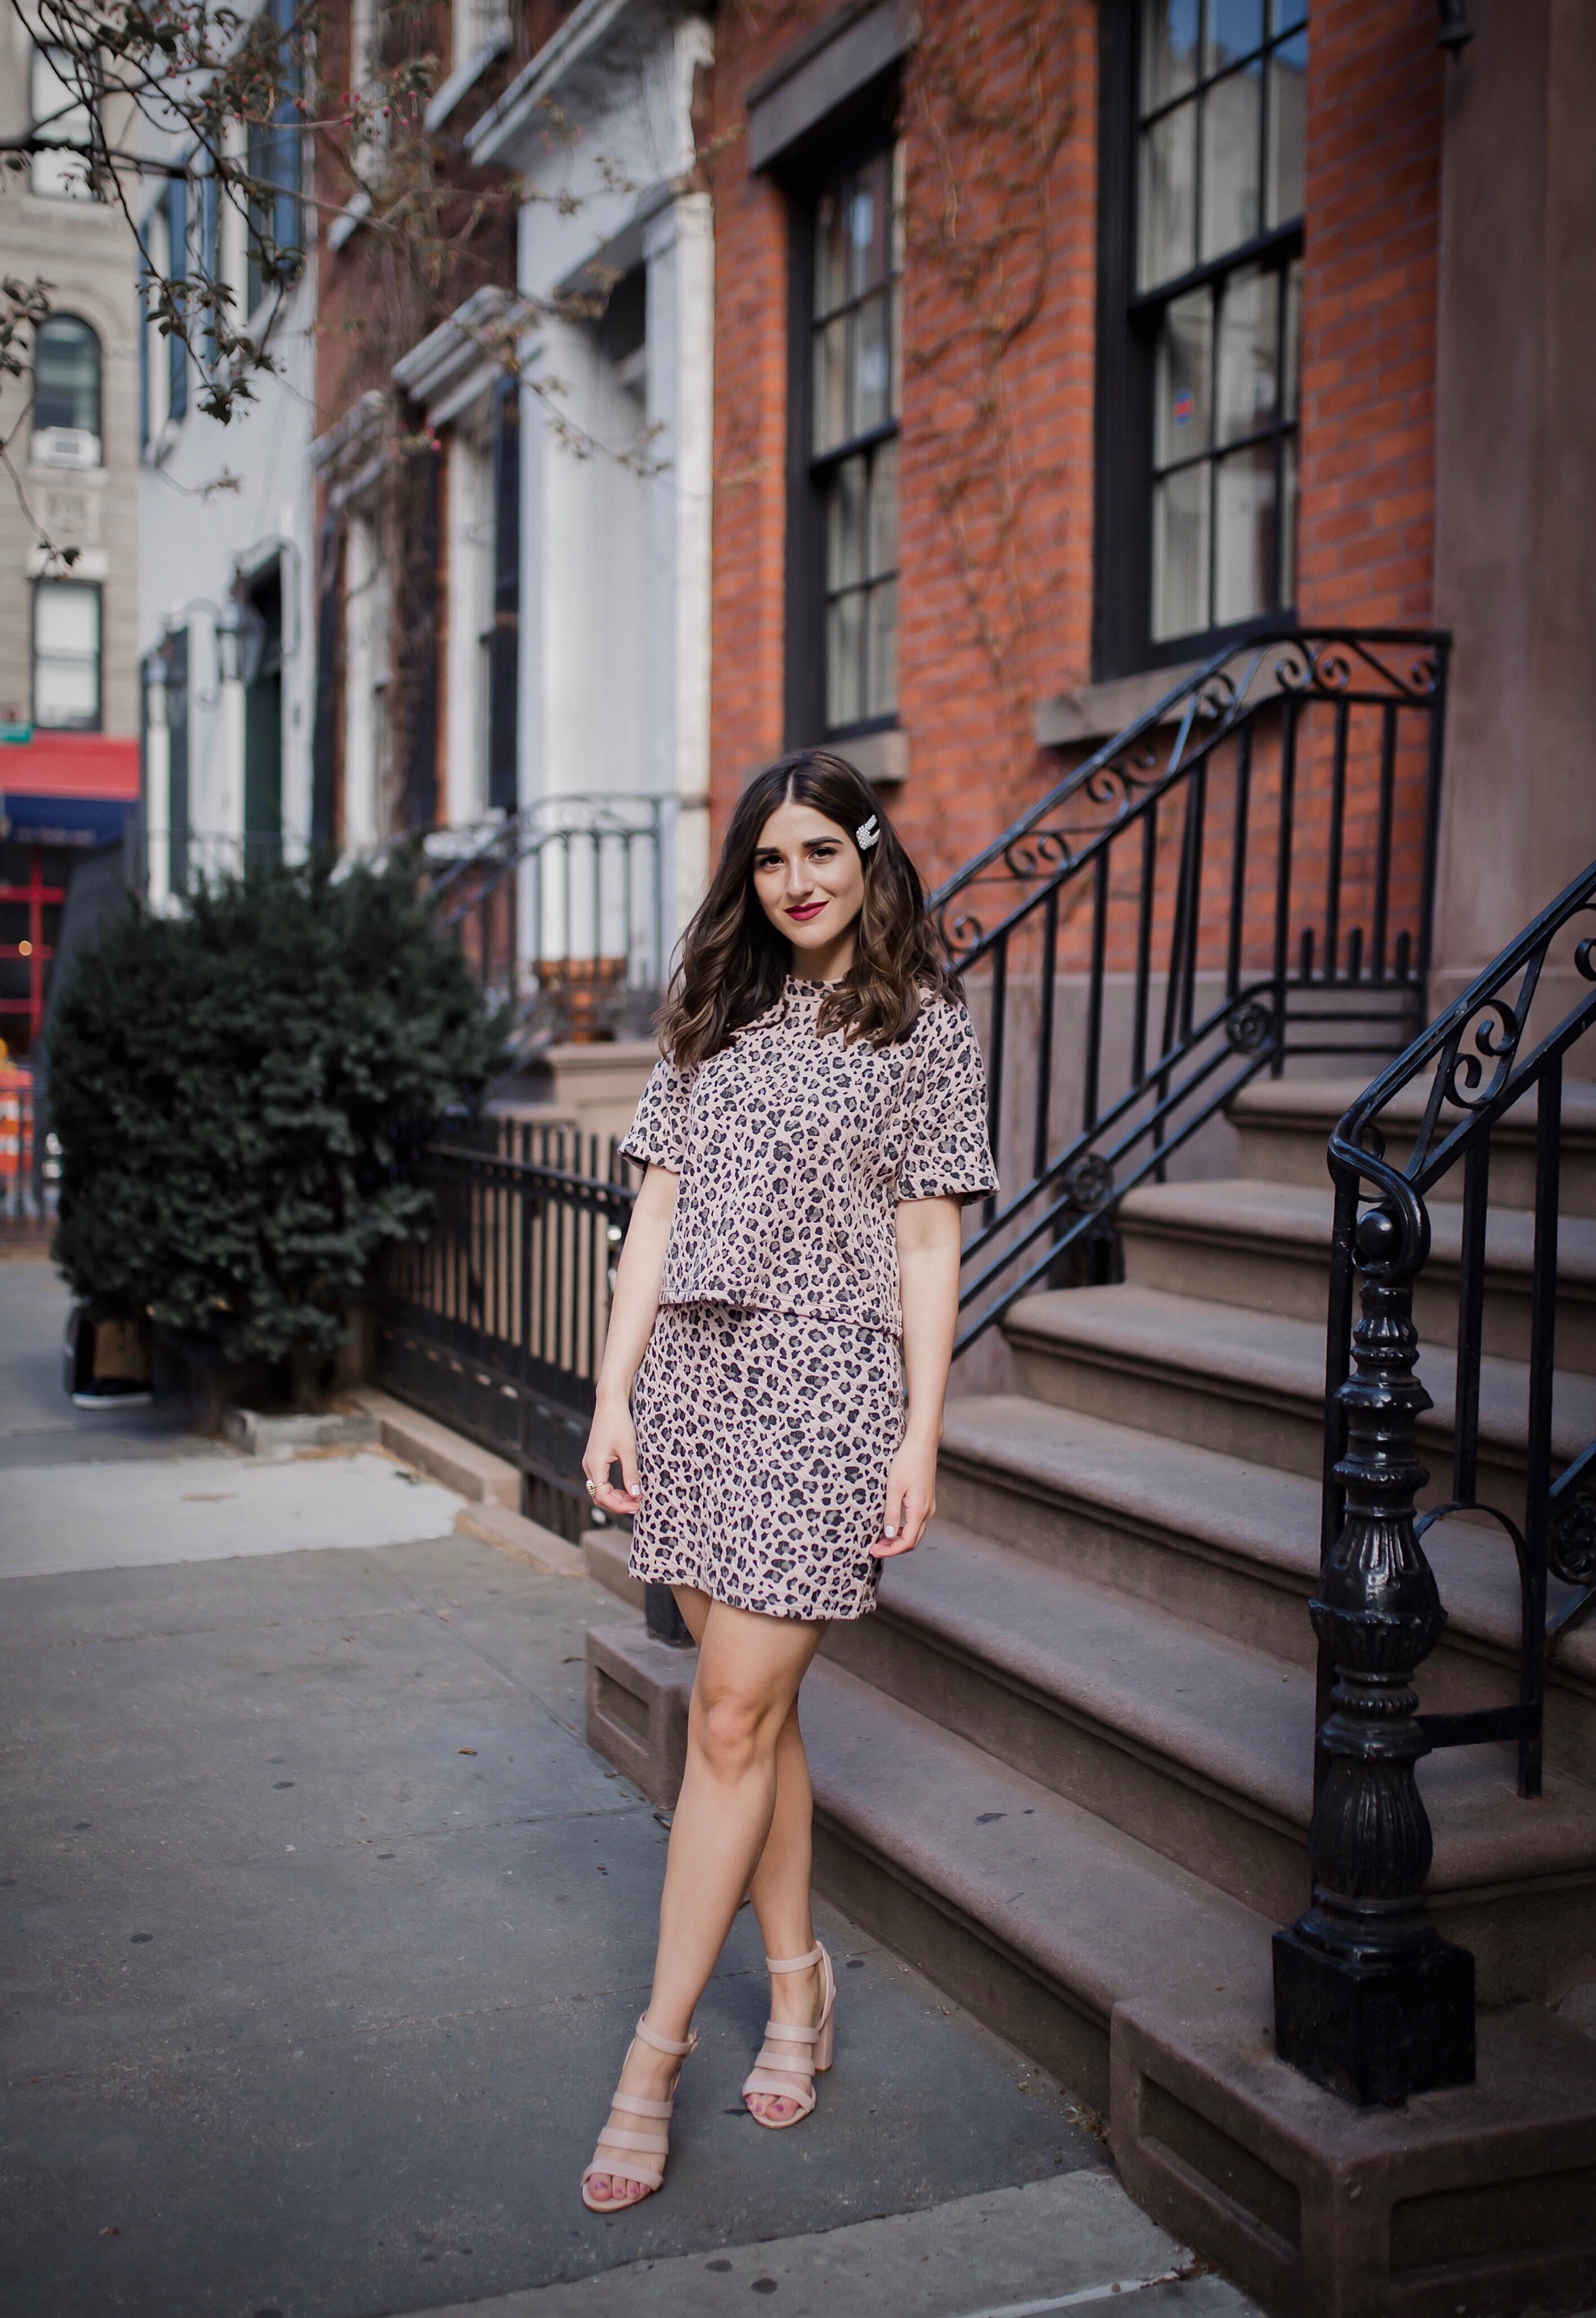 Why People Should Stop Hating On Bloggers Pink Leopard Set Esther Santer Fashion Blog NYC Street Style Blogger Outfit OOTD Clip Trendy Shopping Girl Wear Logical Approach Charity Work Stay At Home Mom Powerful Impact Positivity Mental Health Awareness.JPG